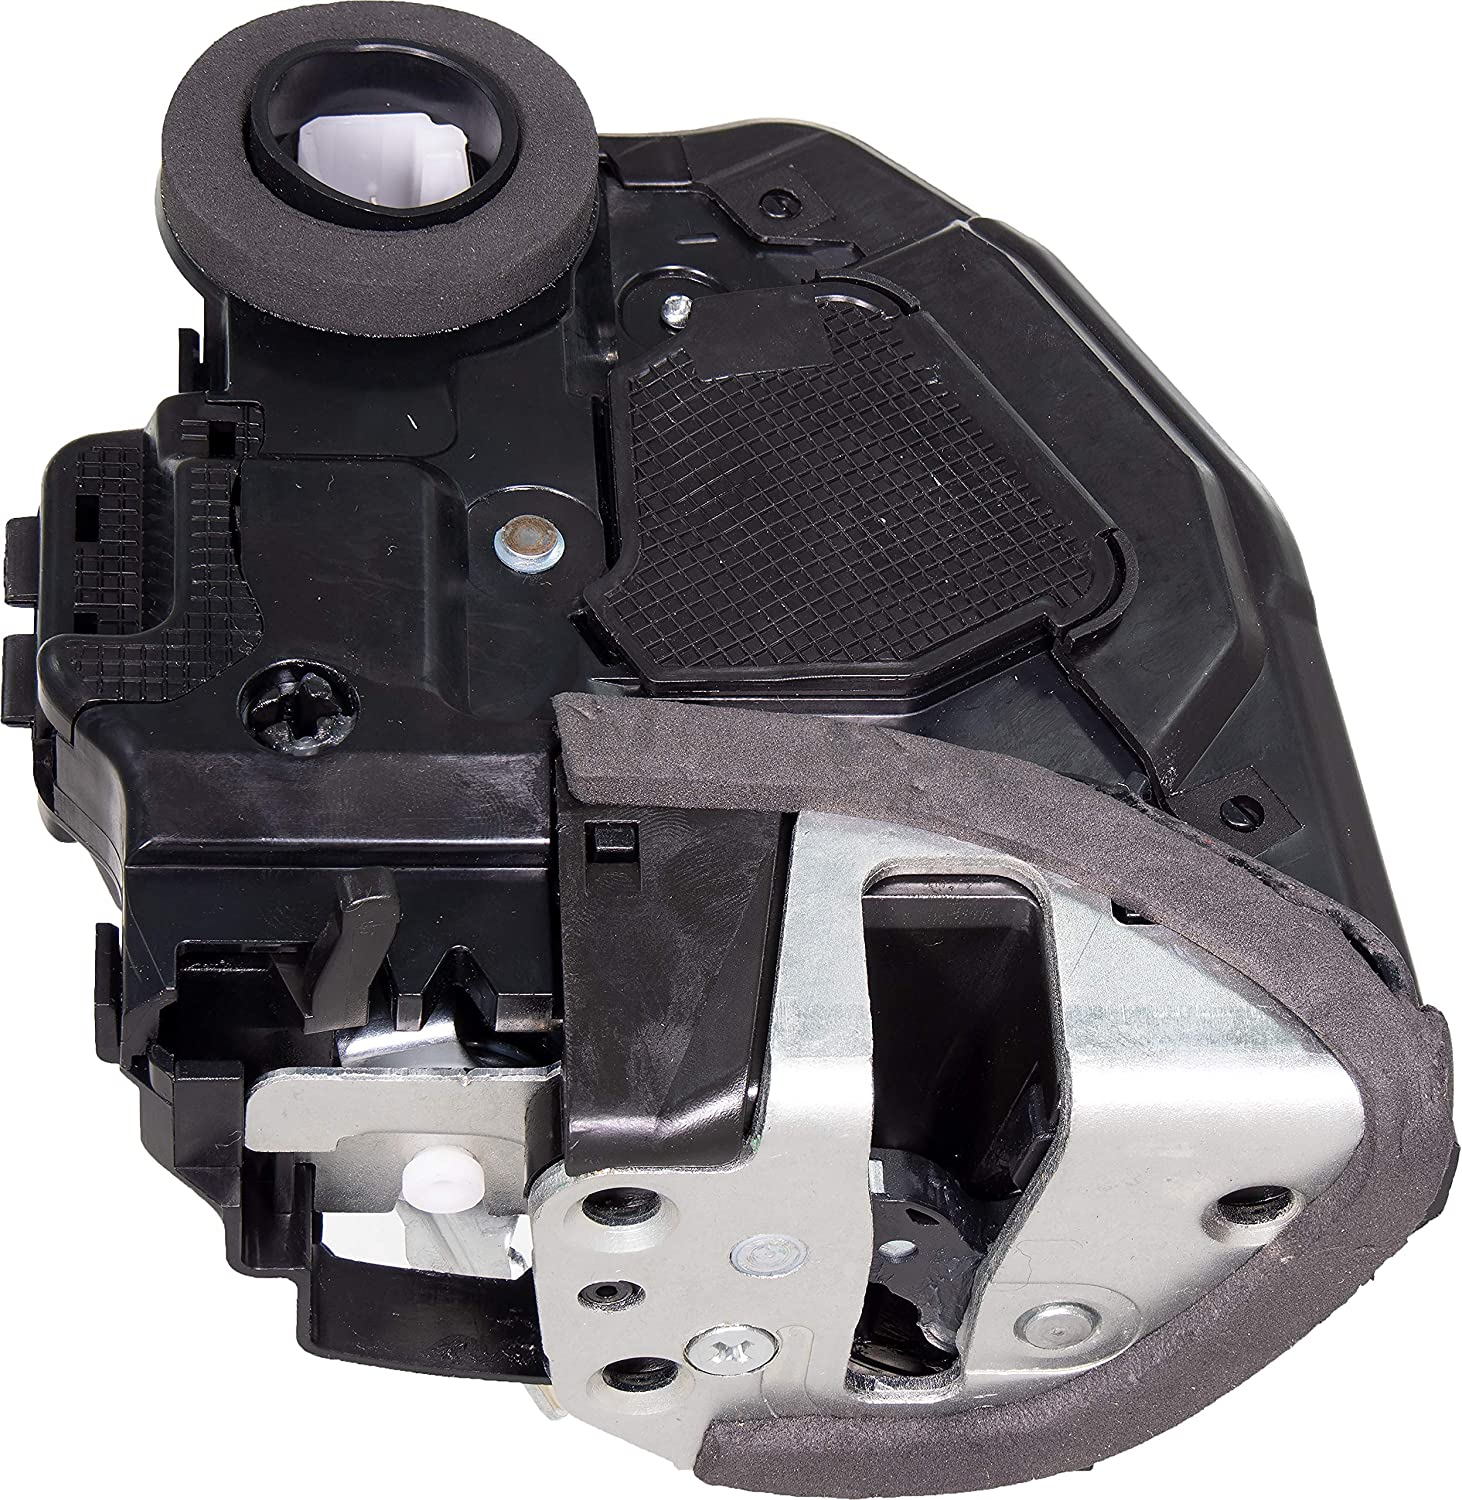 Replaces 690500C030, 69050-0C030, 69050-0C060, 690500C060 APDTY 042598 Door Lock Actuator /& Latch Assembly Fits Rear Passenger Side Right 2007-2018 Toyota Tundra /& 2008-2018 Sequoia